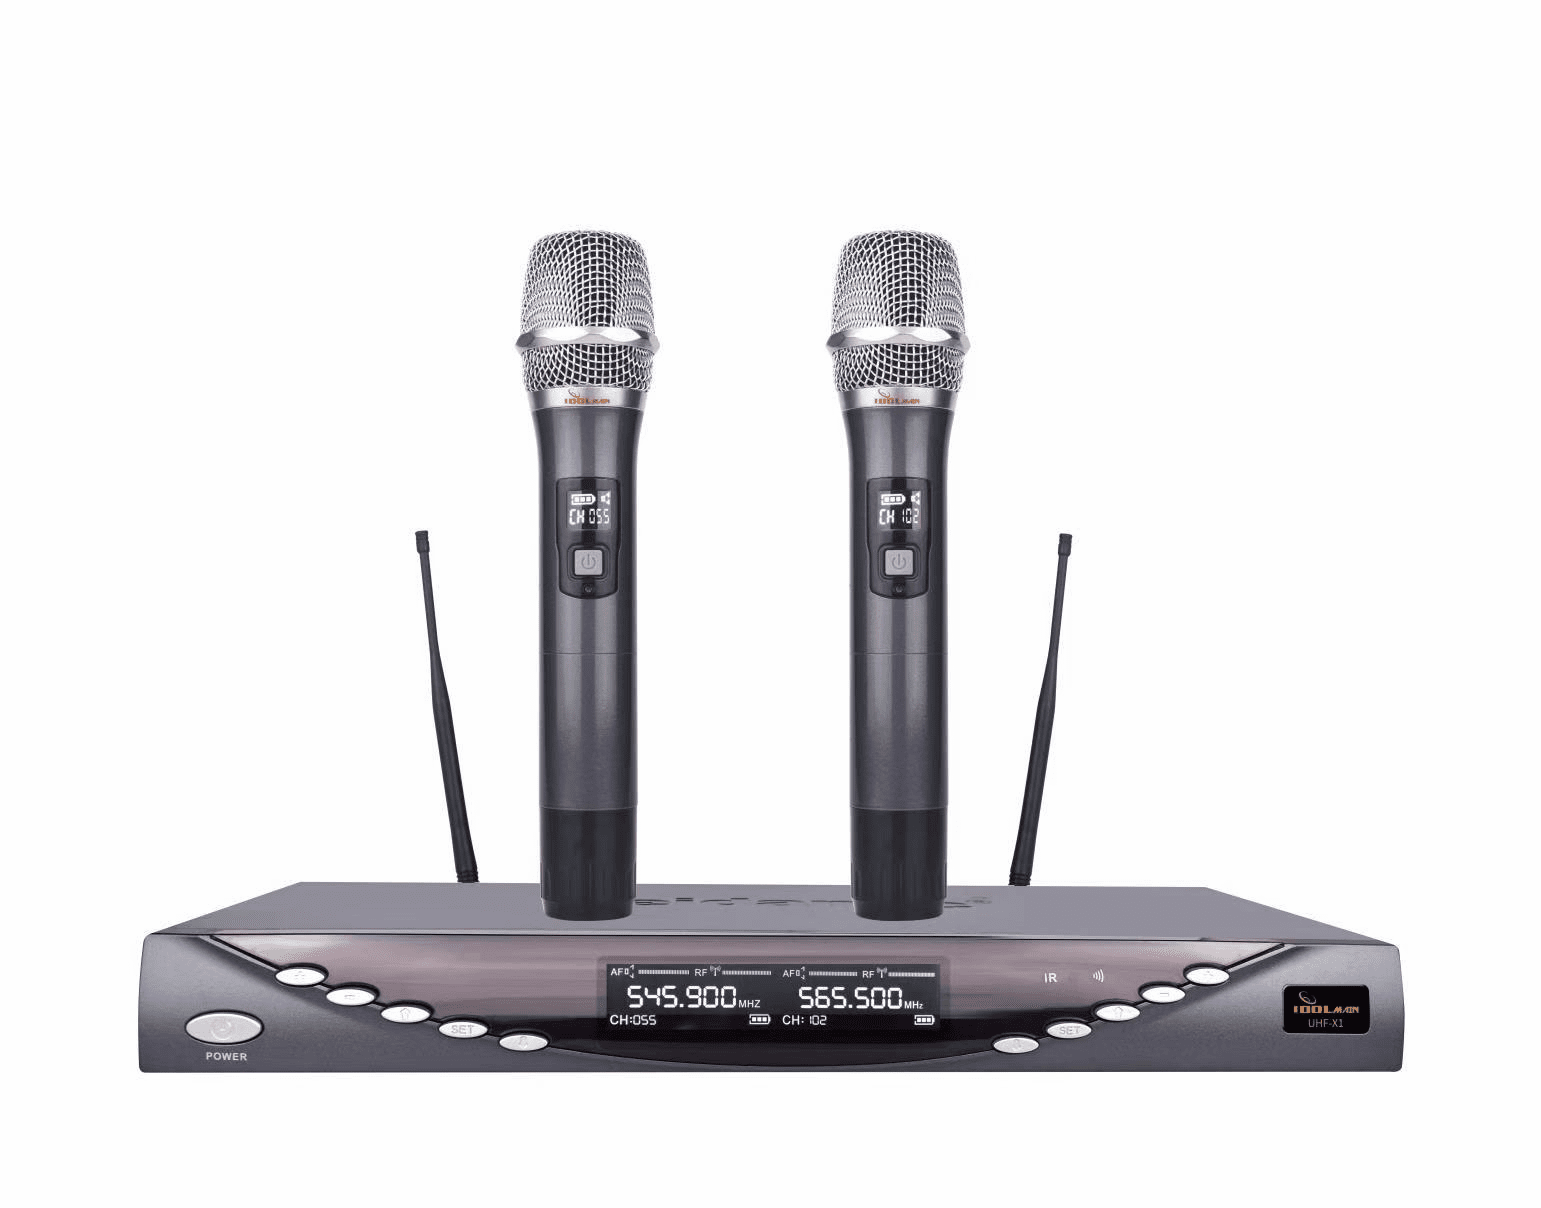 IDOLmain UHF-X1 Professional Performance With Anti Feedback,Ultra Low Distortion, and No-Touch Frequency Scanning with Digital Pilot Technology Dual Wireless Microphone System